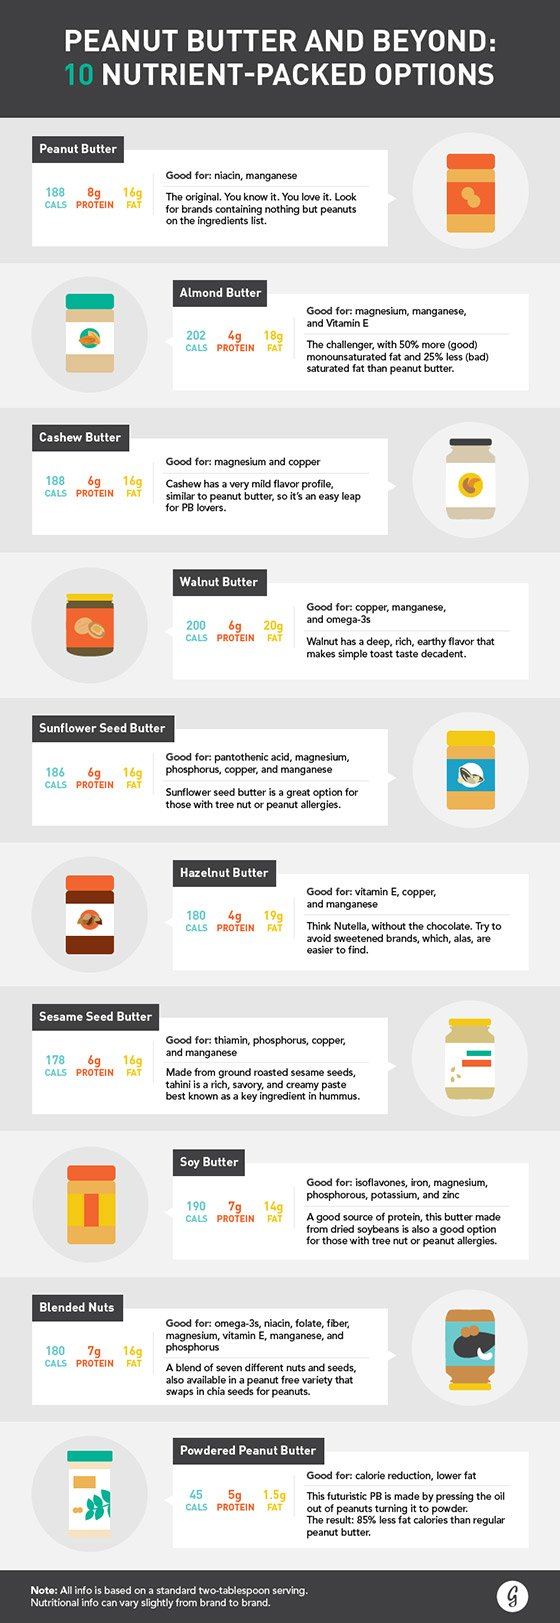 nutrient packed nut butters - diet tips